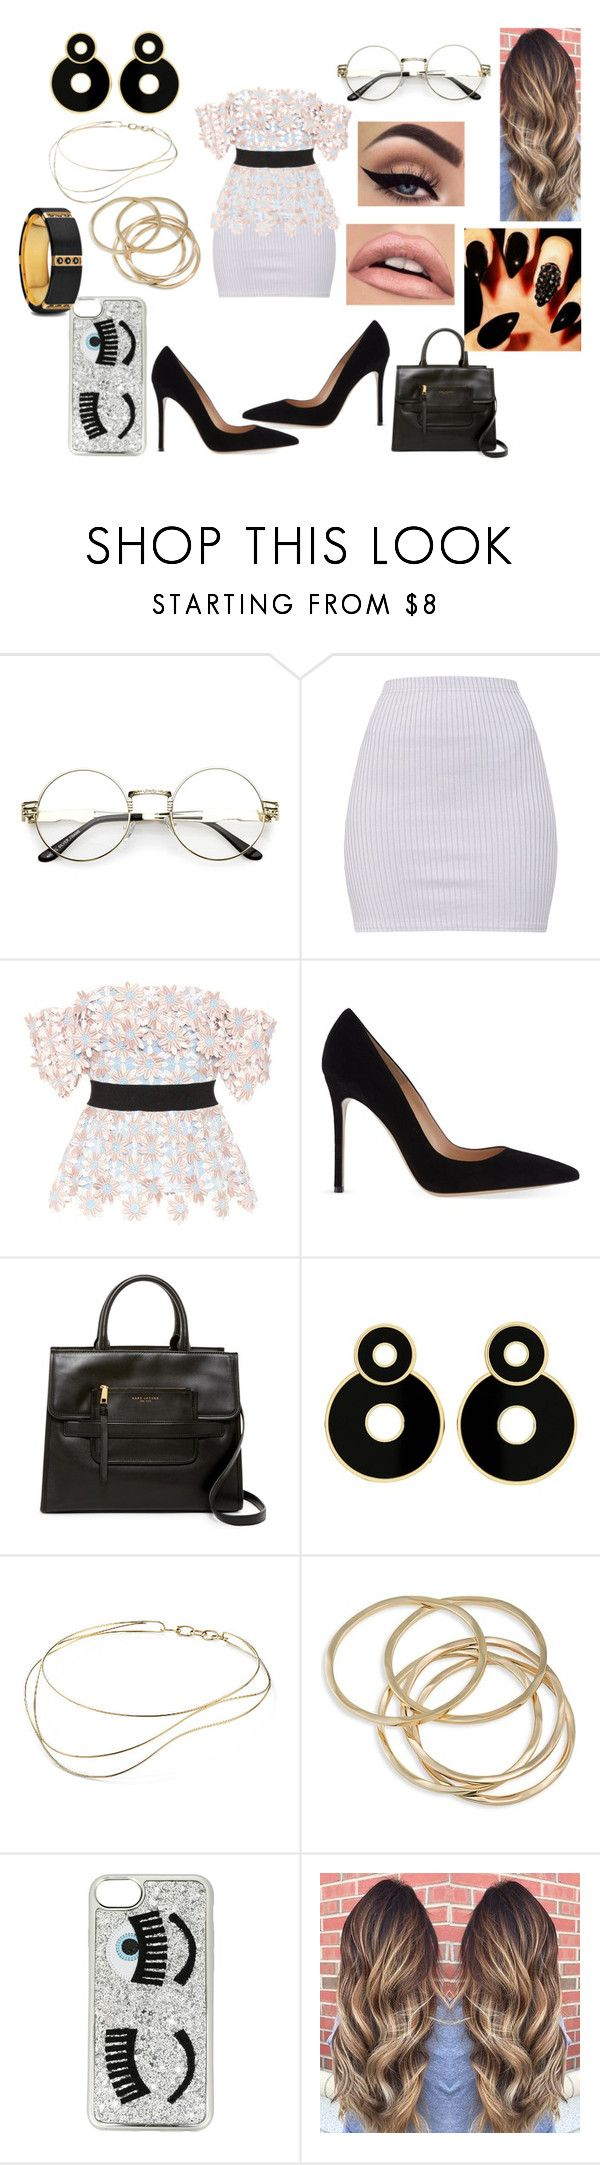 """""""Work 😇"""" by shayma-sheikh ❤ liked on Polyvore featuring self-portrait, Gianvito Rossi, Marc Jacobs, Elsa Peretti, ABS by Allen Schwartz and Chiara Ferragni"""